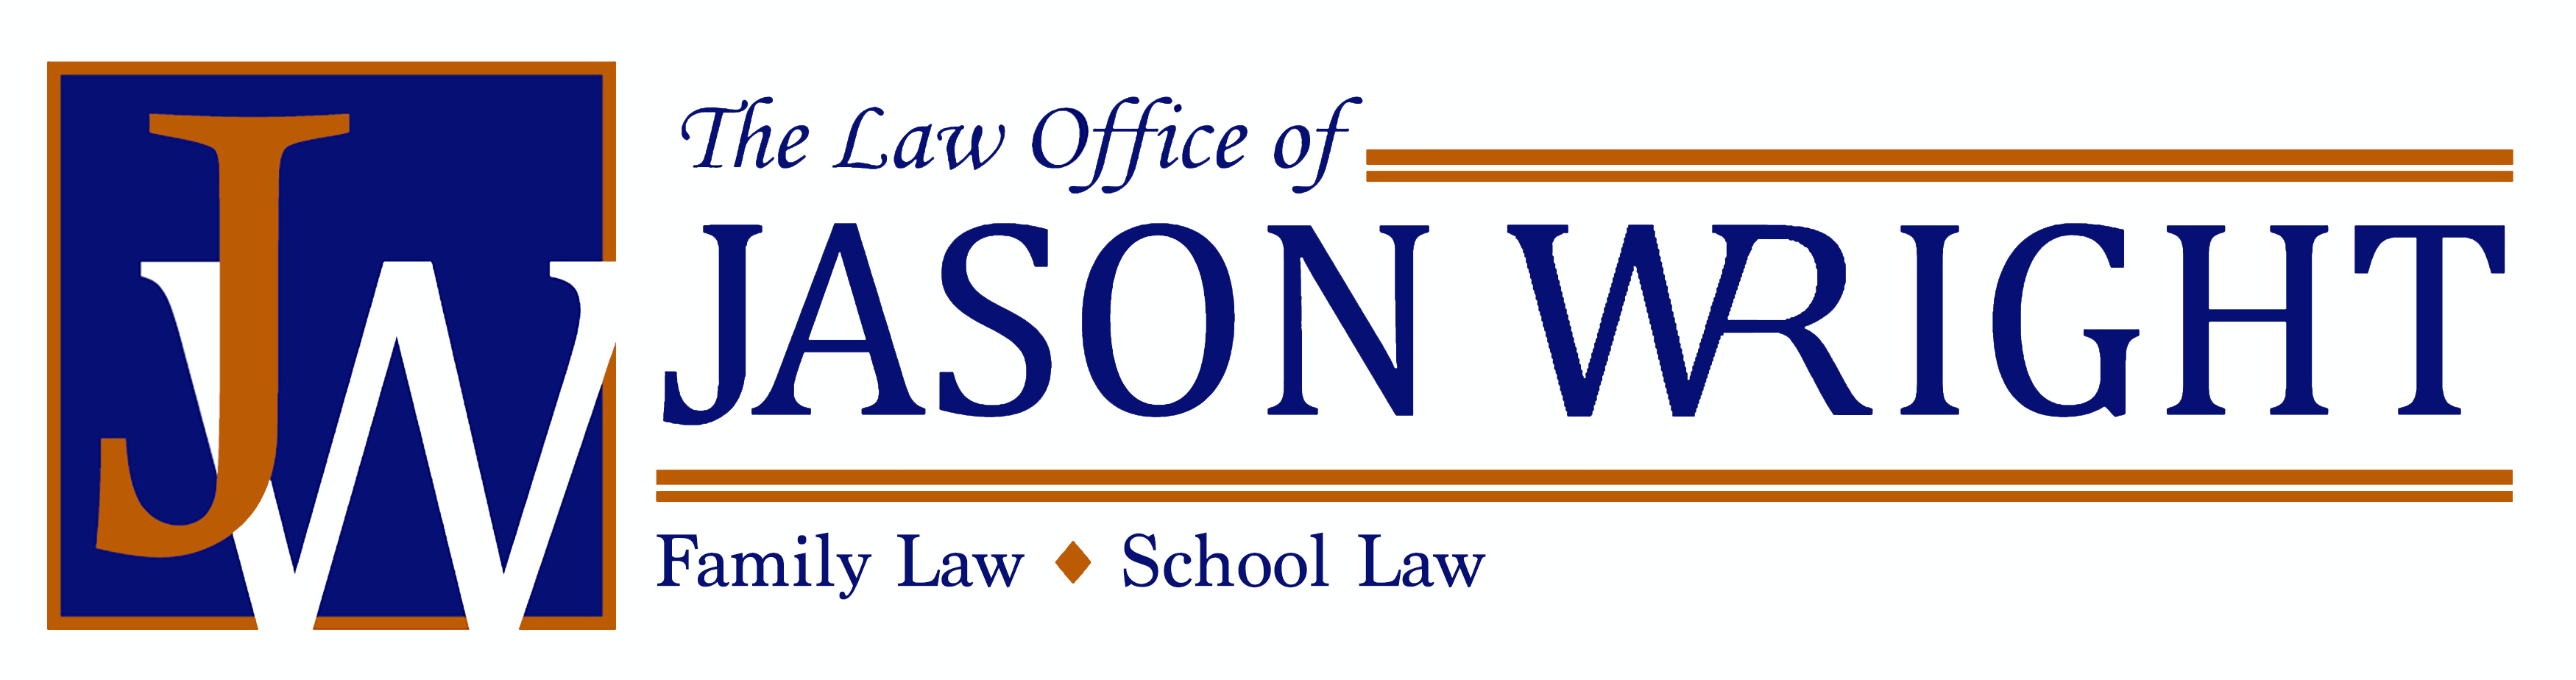 Jason Wright Law